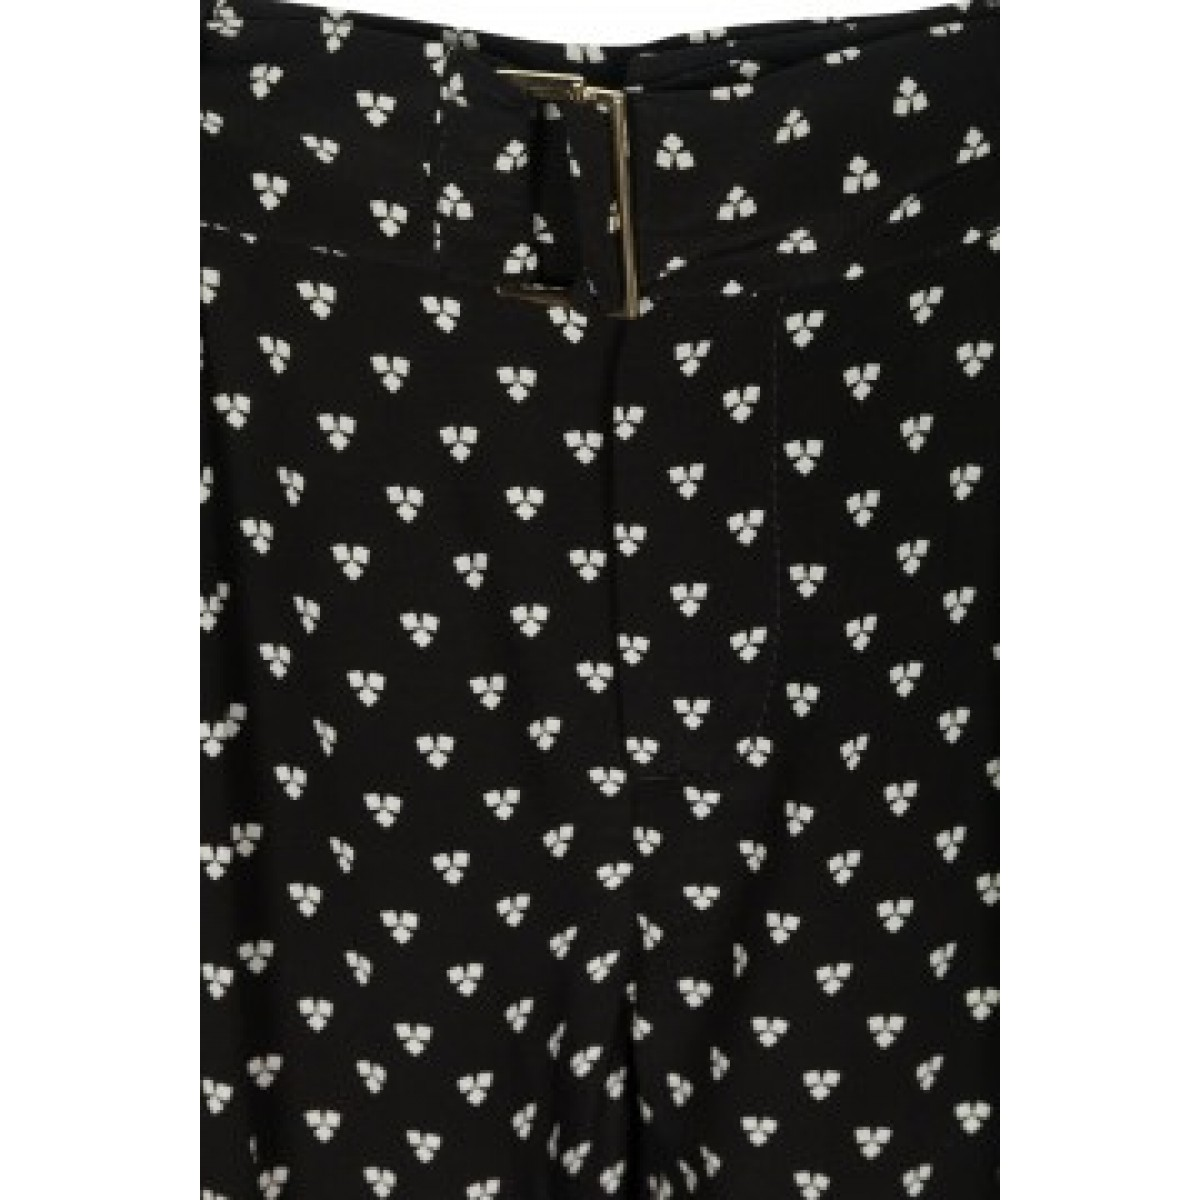 Oui 52779-0991 Trousers Black White-35